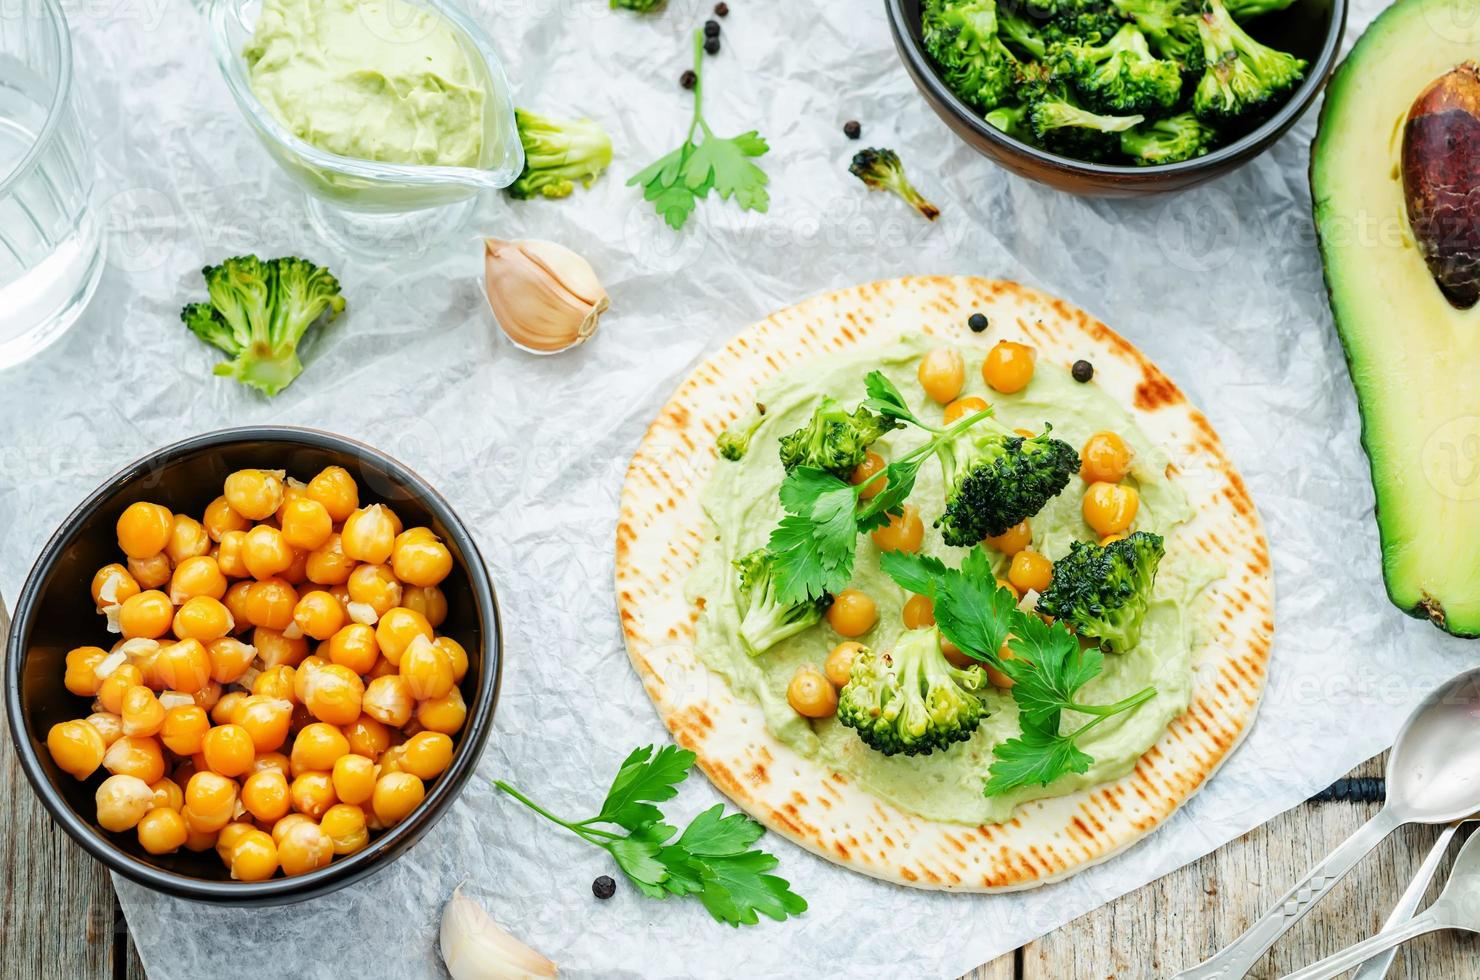 vegan tortilla with roasted broccoli and chickpeas and avocado sauce photo